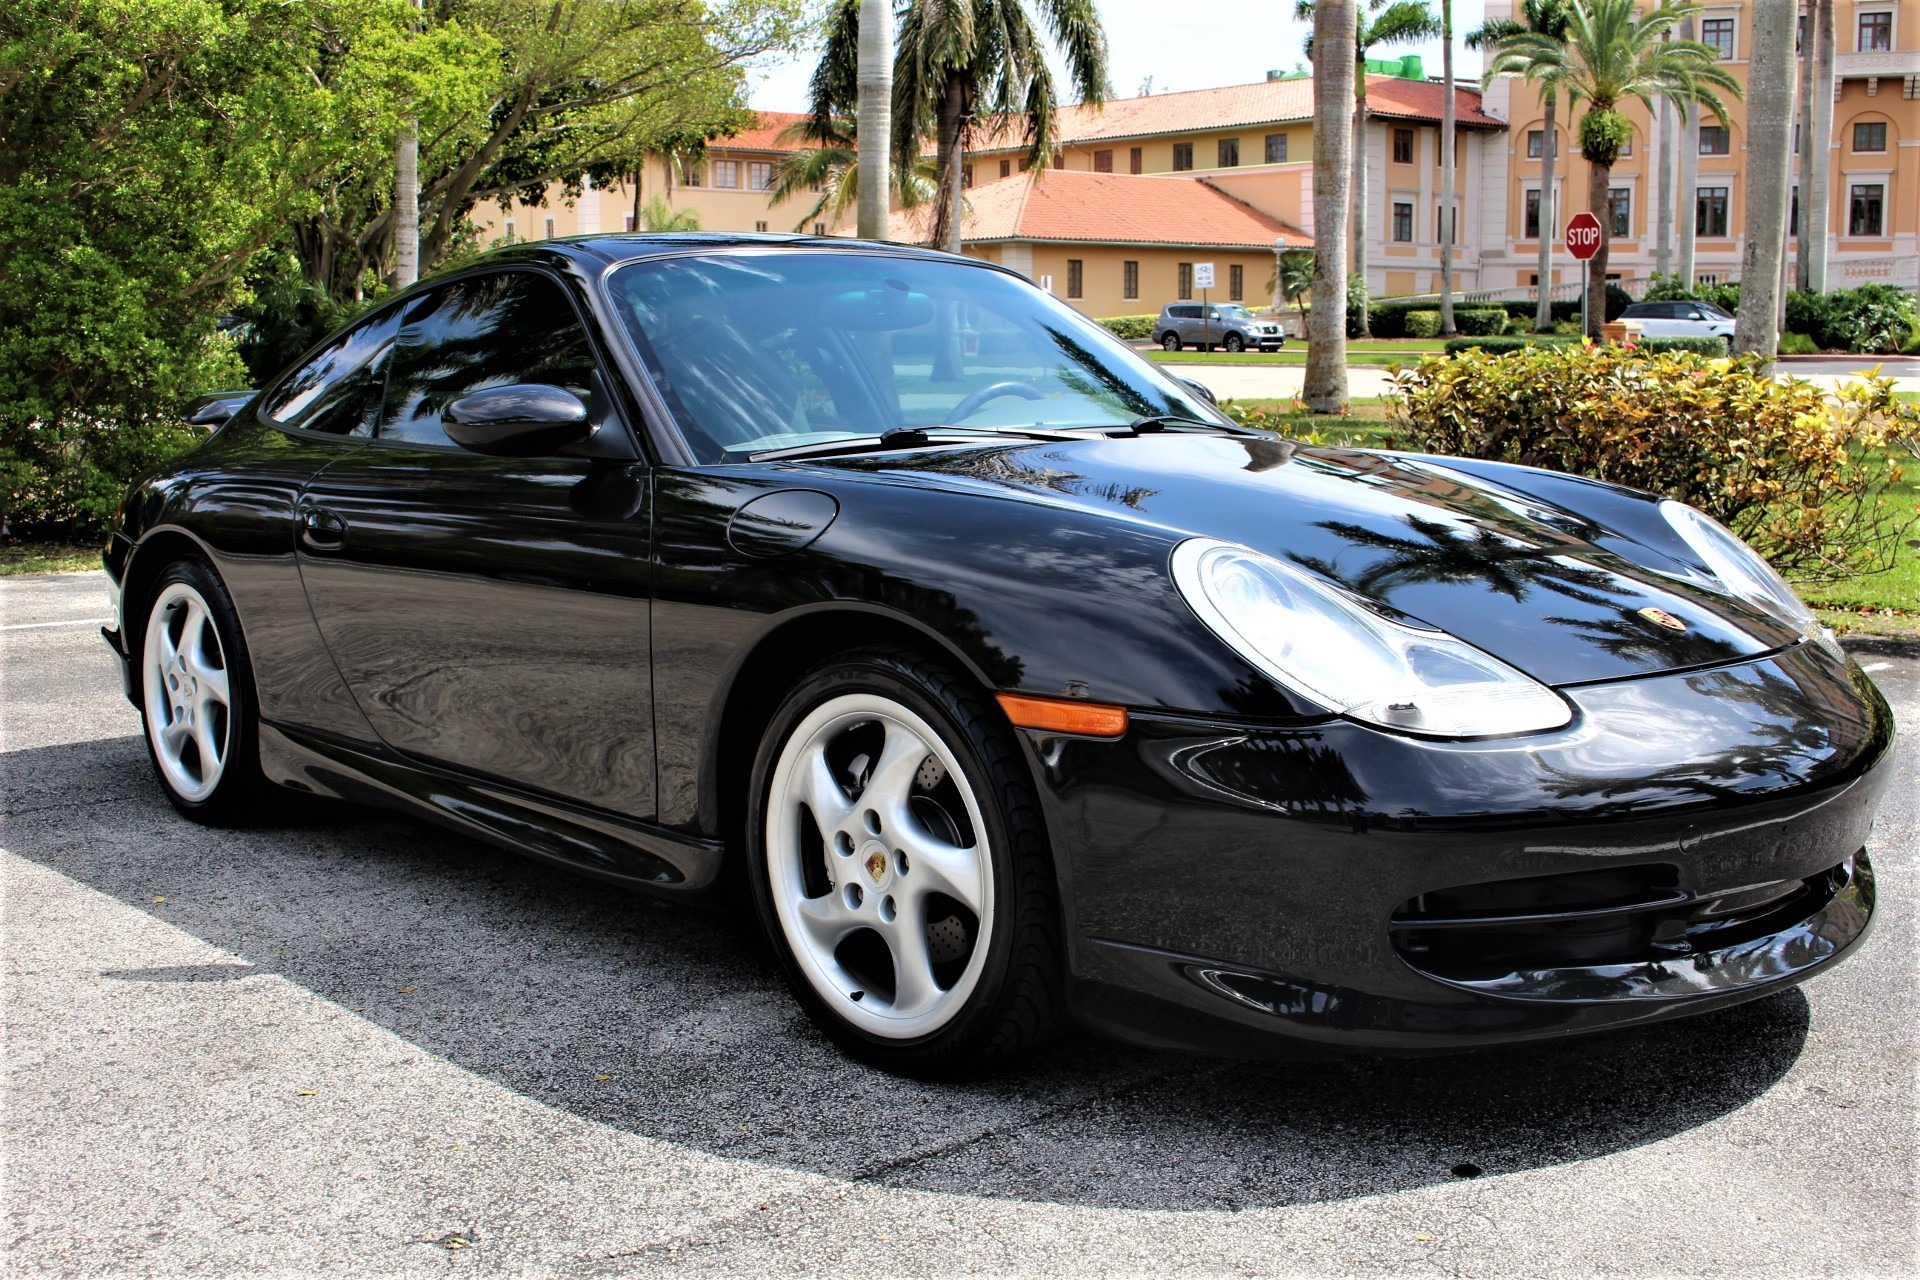 Used 2001 Porsche 911 Carrera 4 for sale Sold at The Gables Sports Cars in Miami FL 33146 2